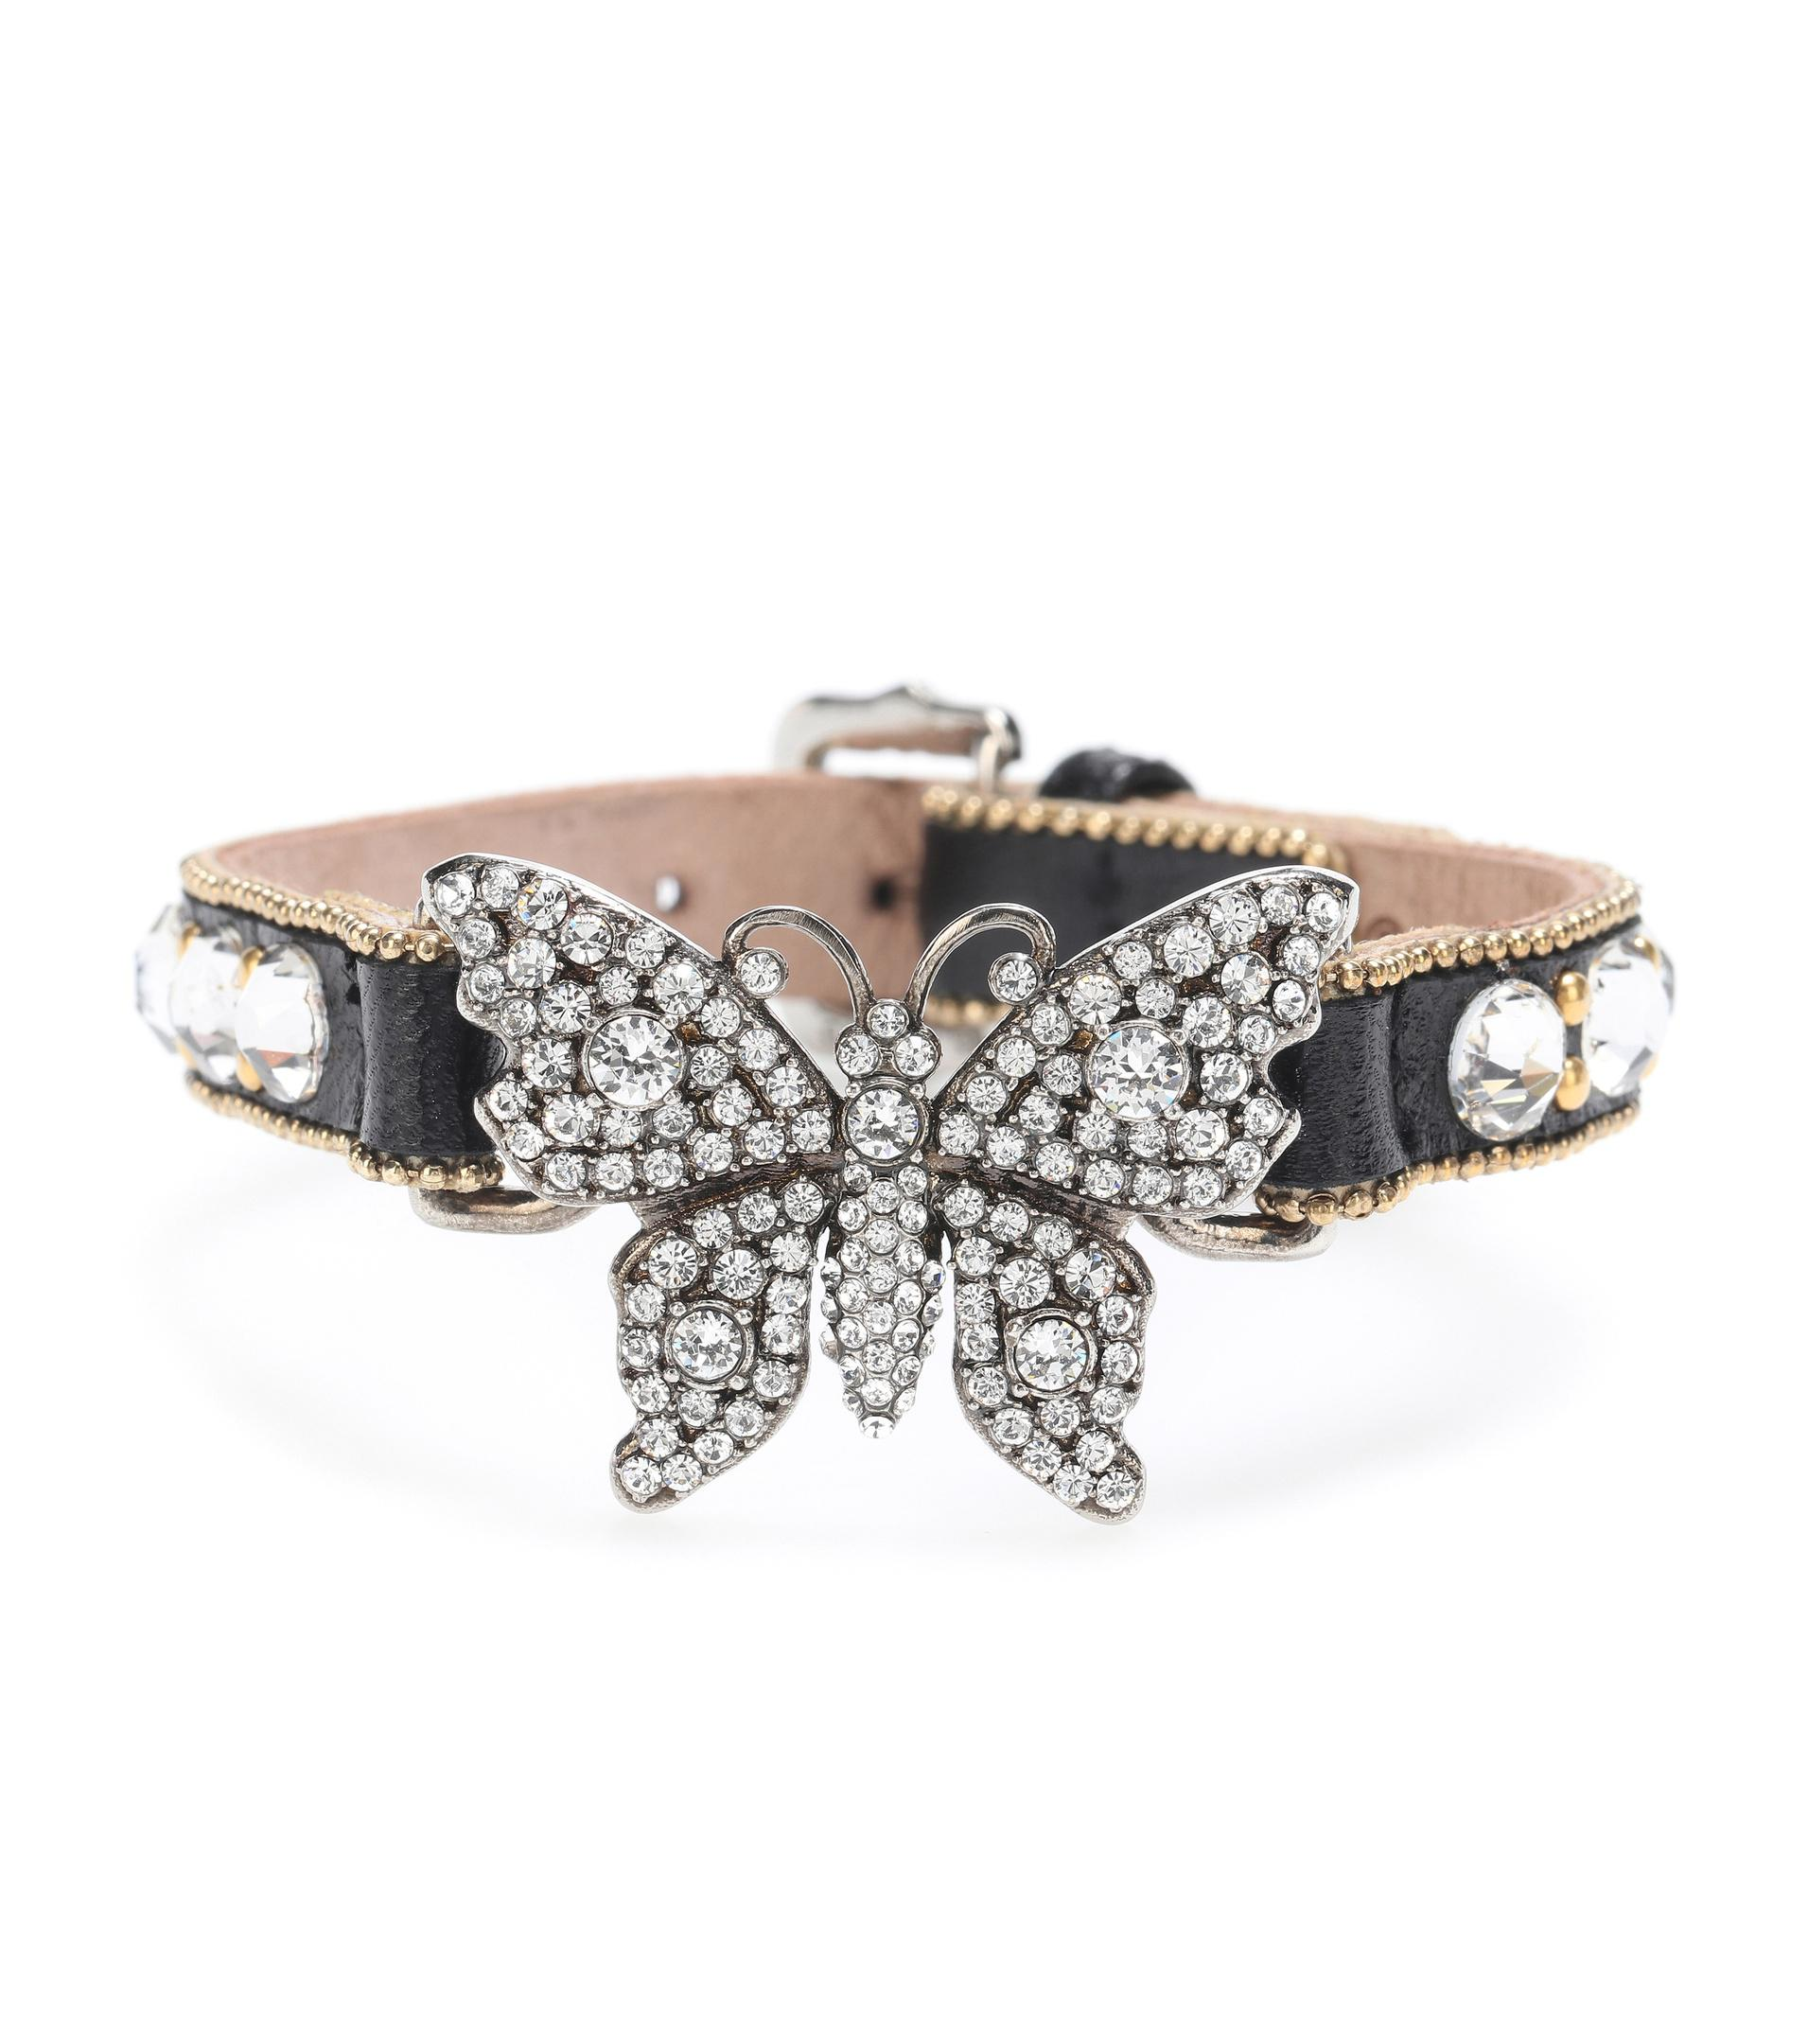 Glass stone-embellished bracelet Gucci